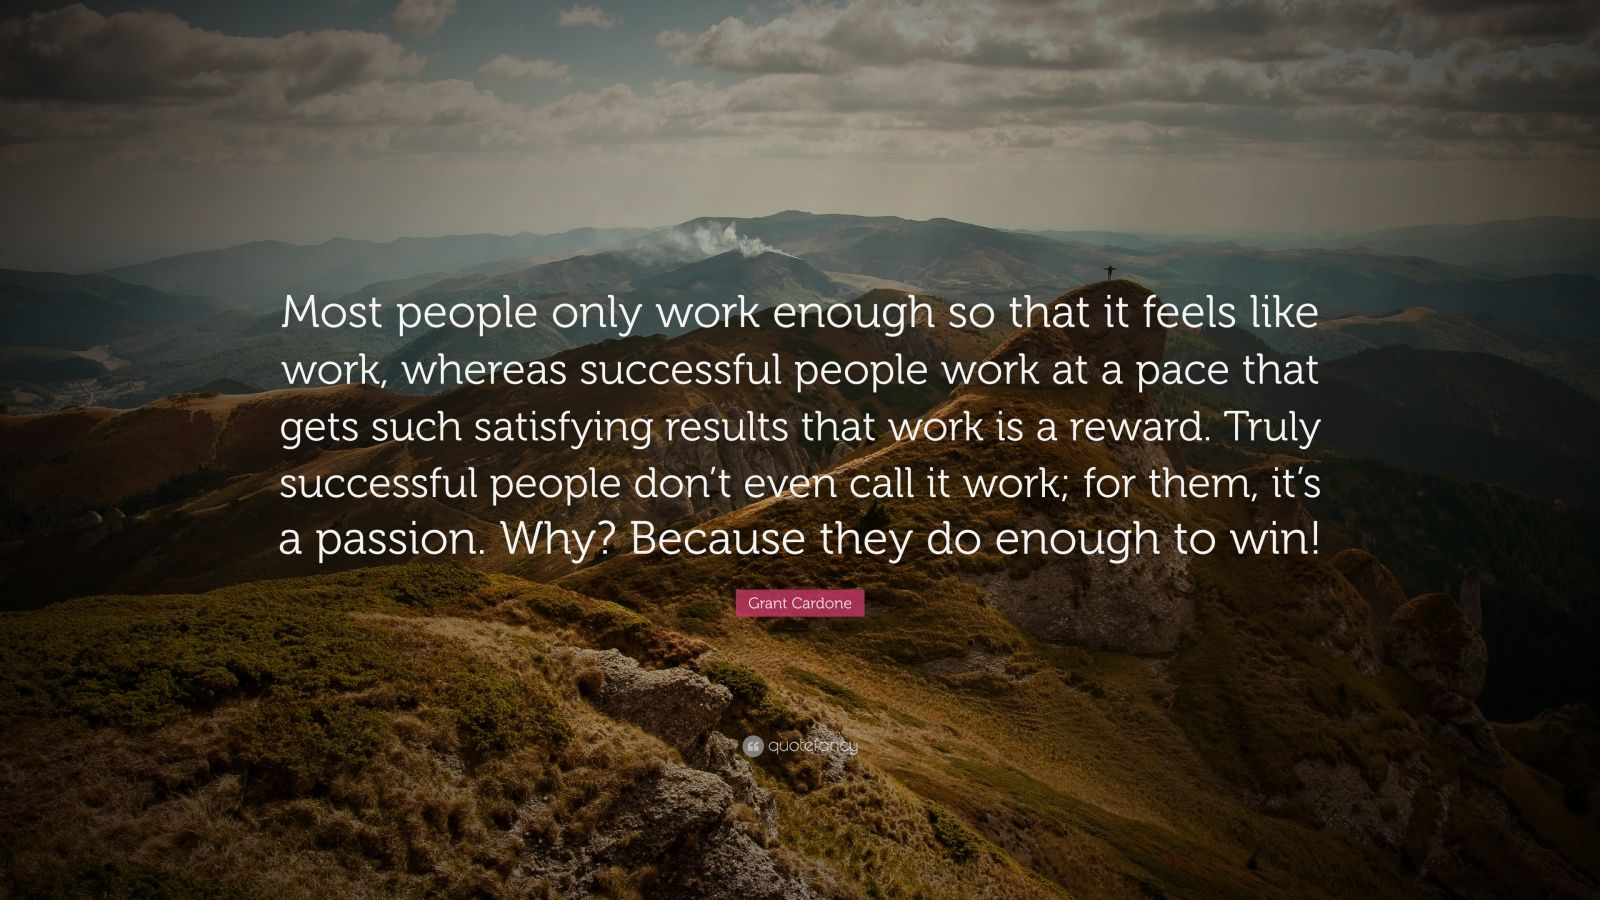 "Grant Cardone Quote: ""Most people only work enough so that it feels like work, whereas successful people work at a pace that gets such satisfying results that work is a reward. Truly successful people don't even call it work; for them, it's a passion. Why? Because they do enough to win!"""